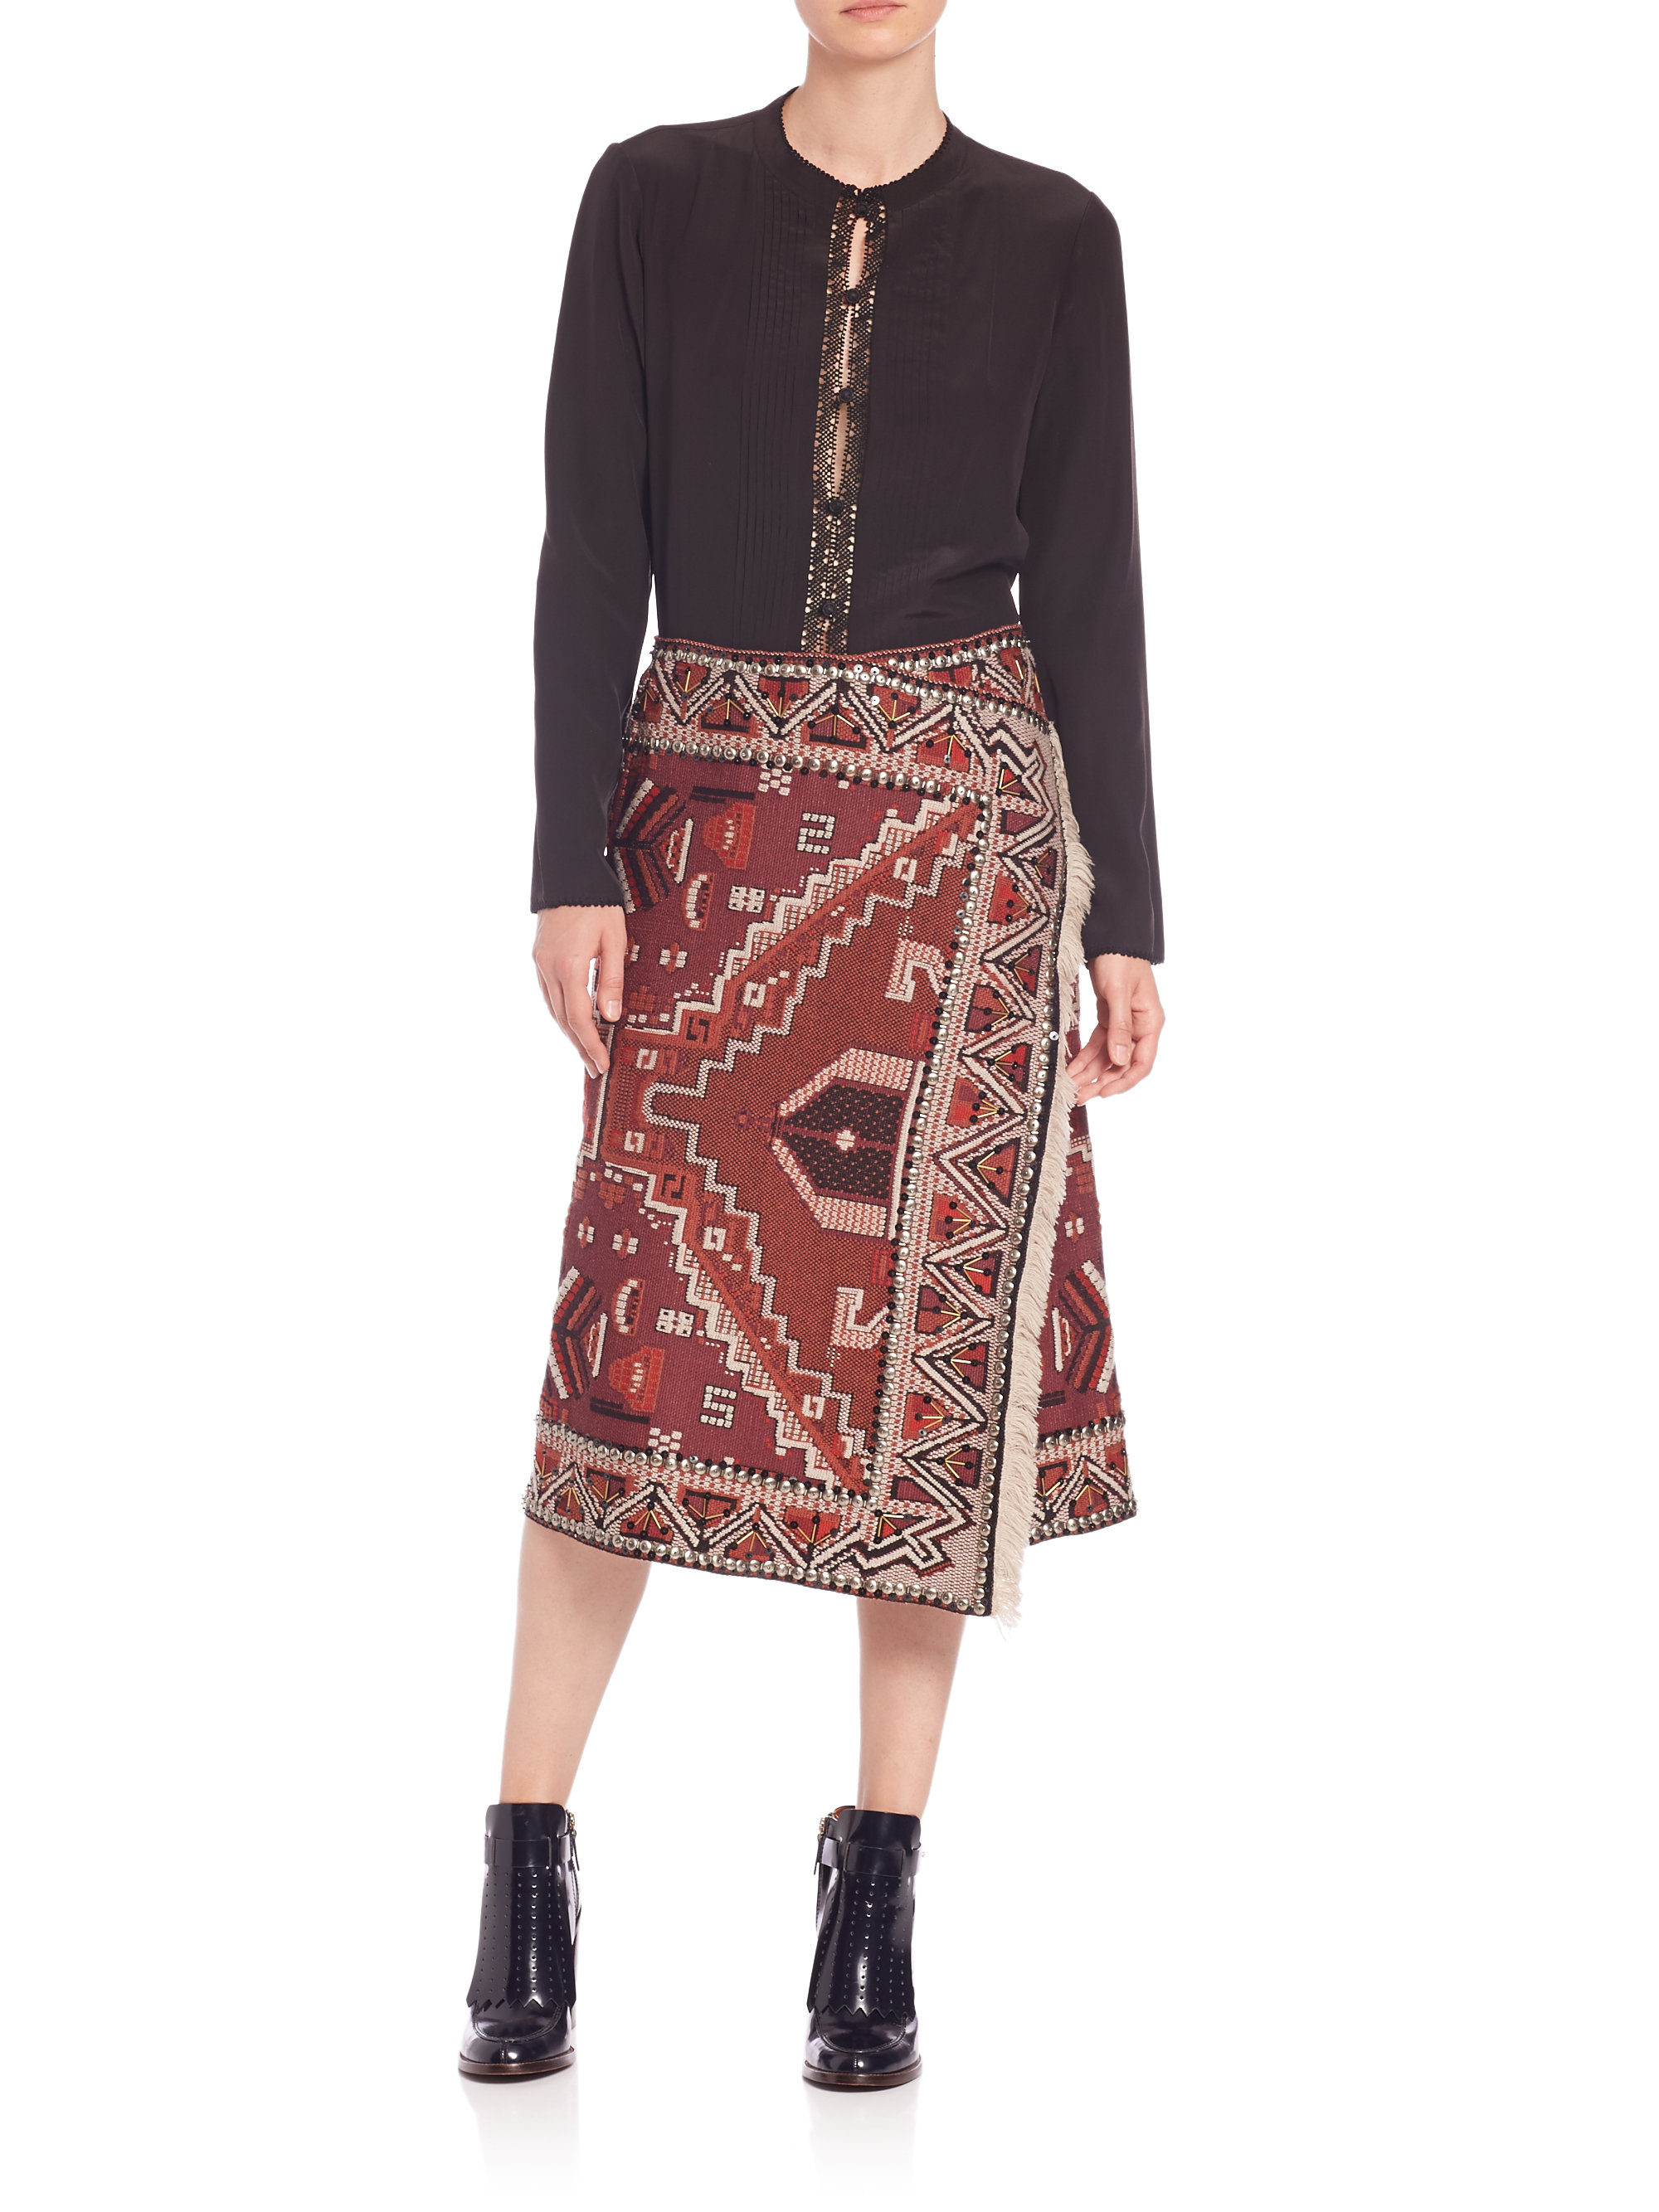 wrapped skirt Tory Burch Cheap Sale In China Online Pay With Visa Online Footlocker Finishline Sale Online Low Price Gpdr5fK